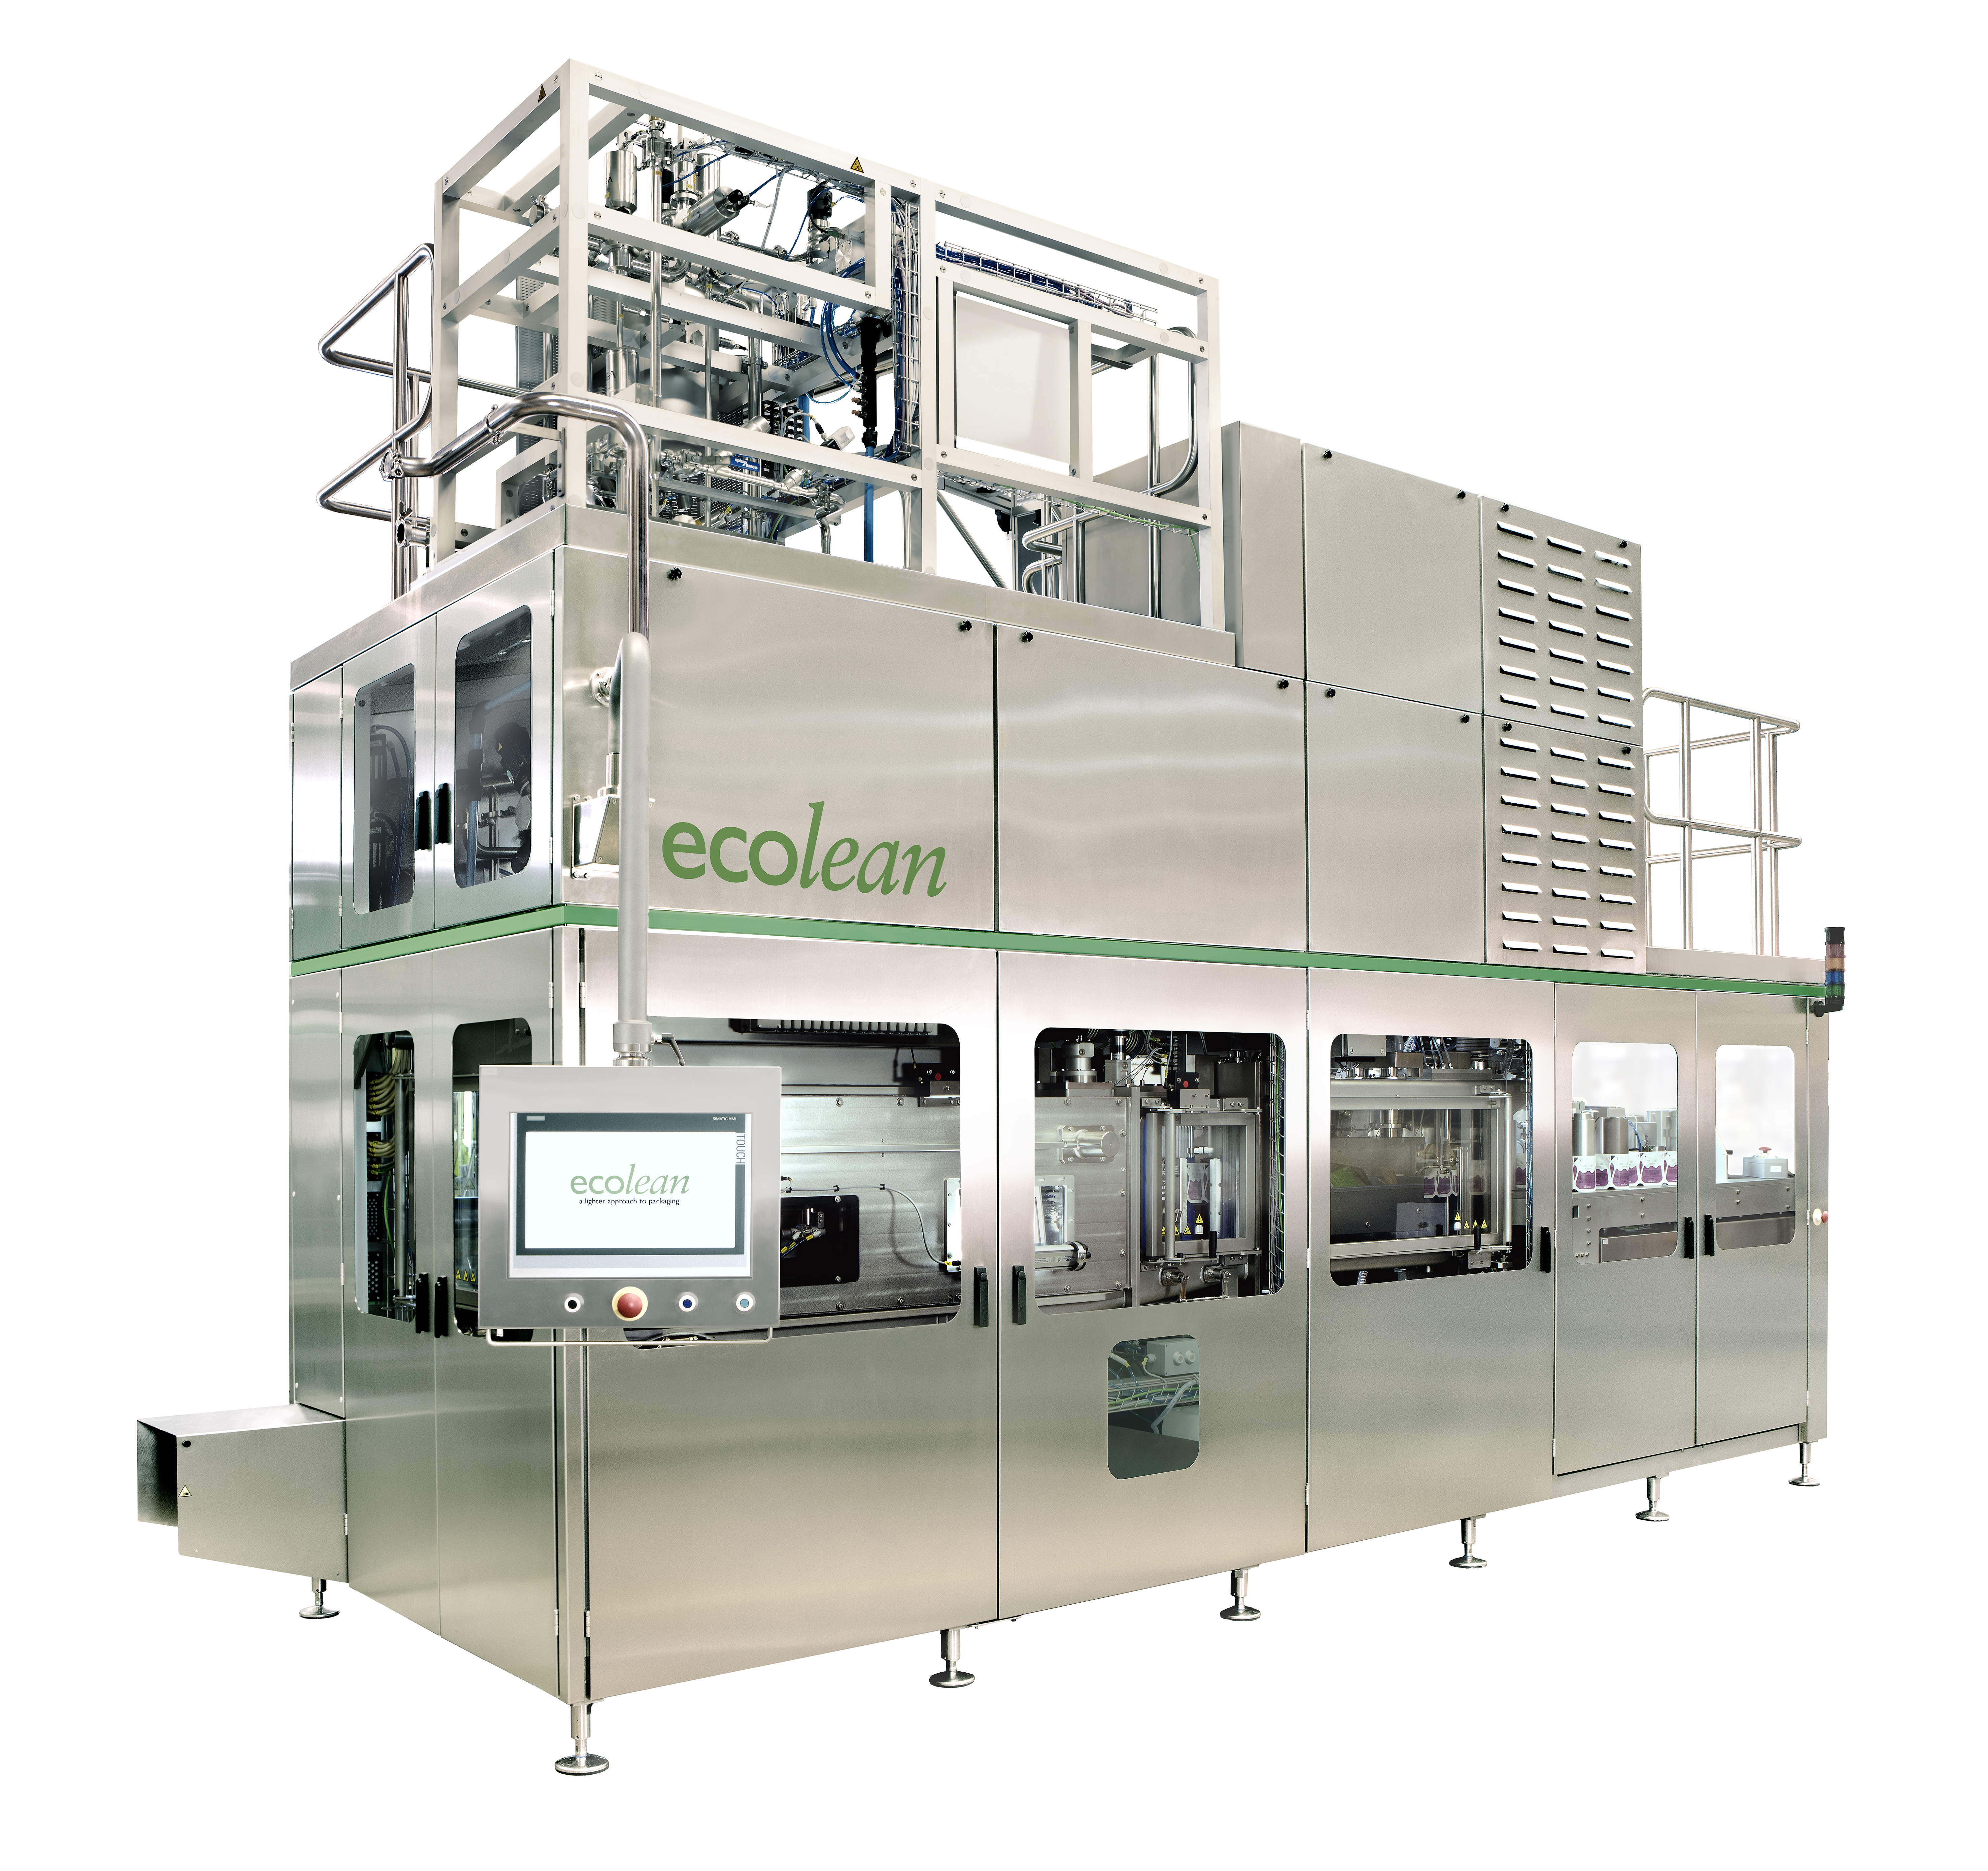 Ecolean aseptic filling machine EL6